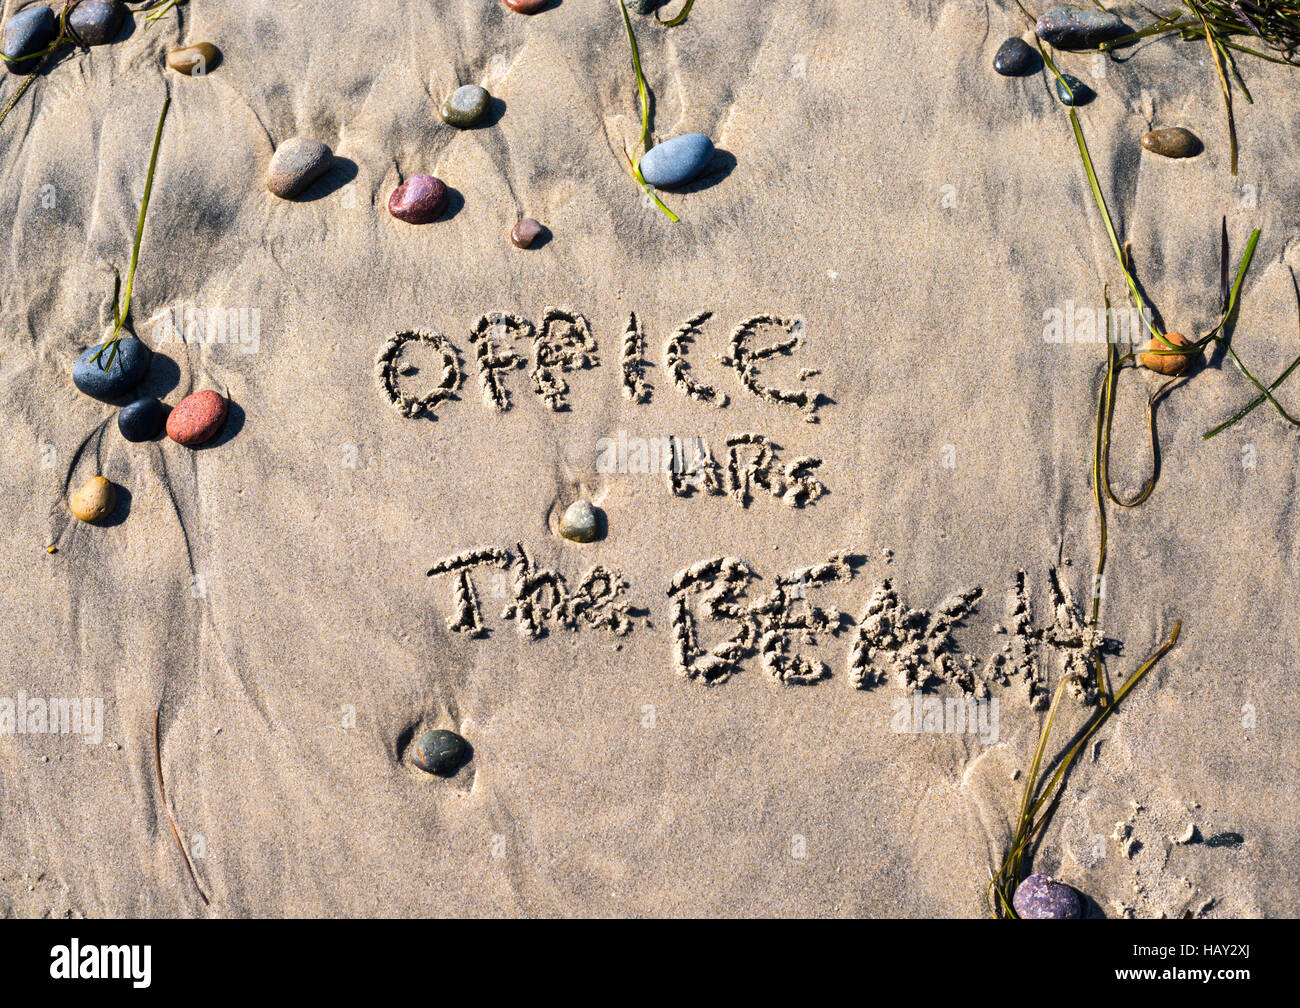 phrase 'office hours, the beach' written on the sand. - Stock Image